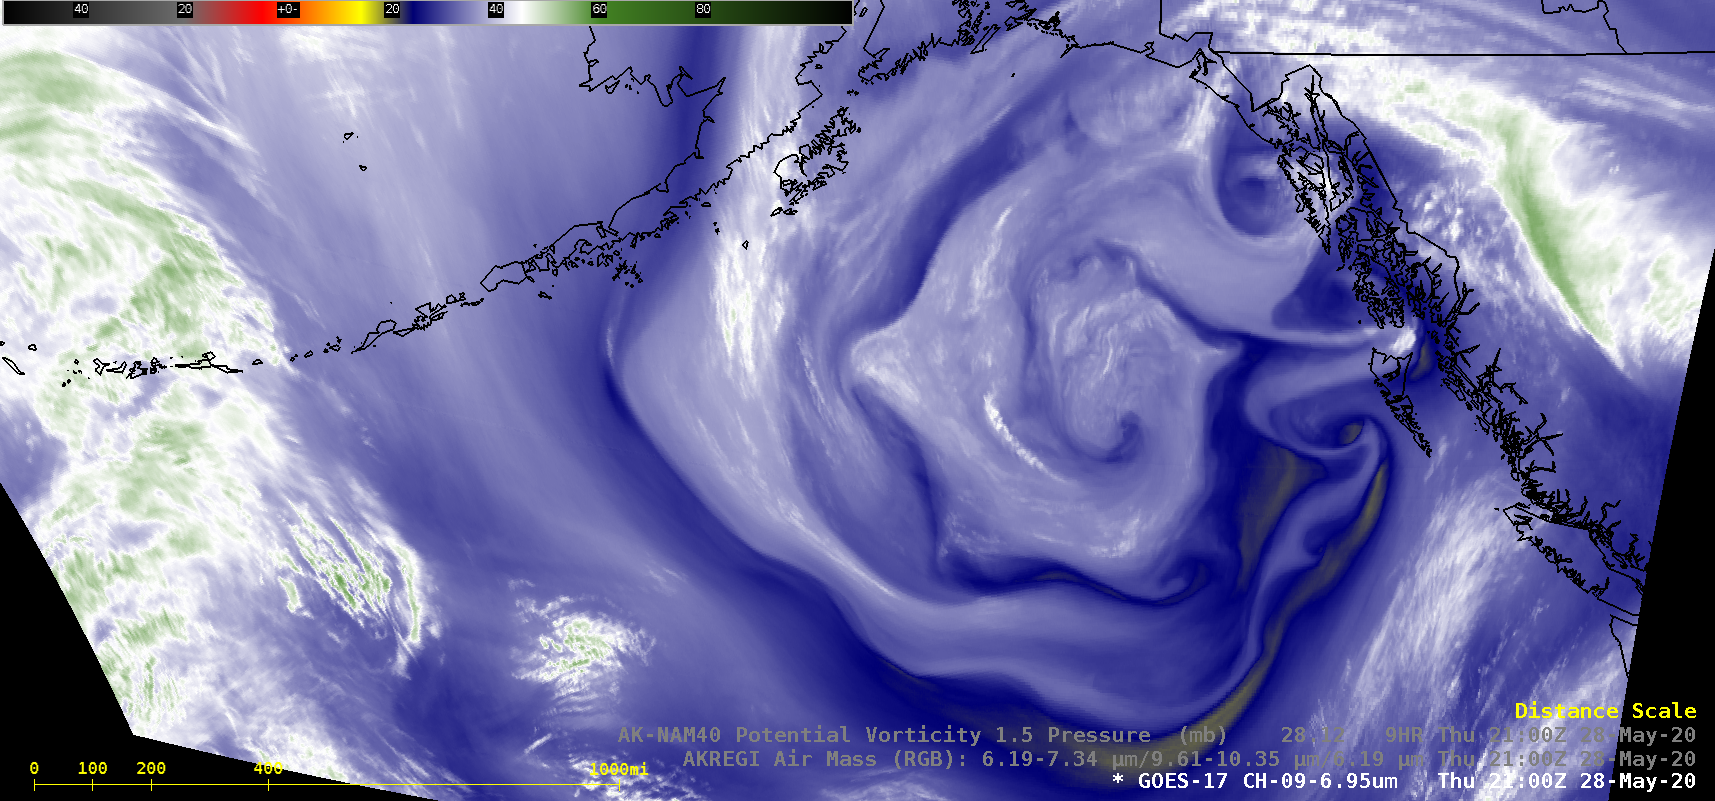 GOES-17 Mid-level Water Vapor (6.9 µm), Air Mass RGB images (with and without an overlay of PV1.5 Pressure) [click to play animation | MP4]